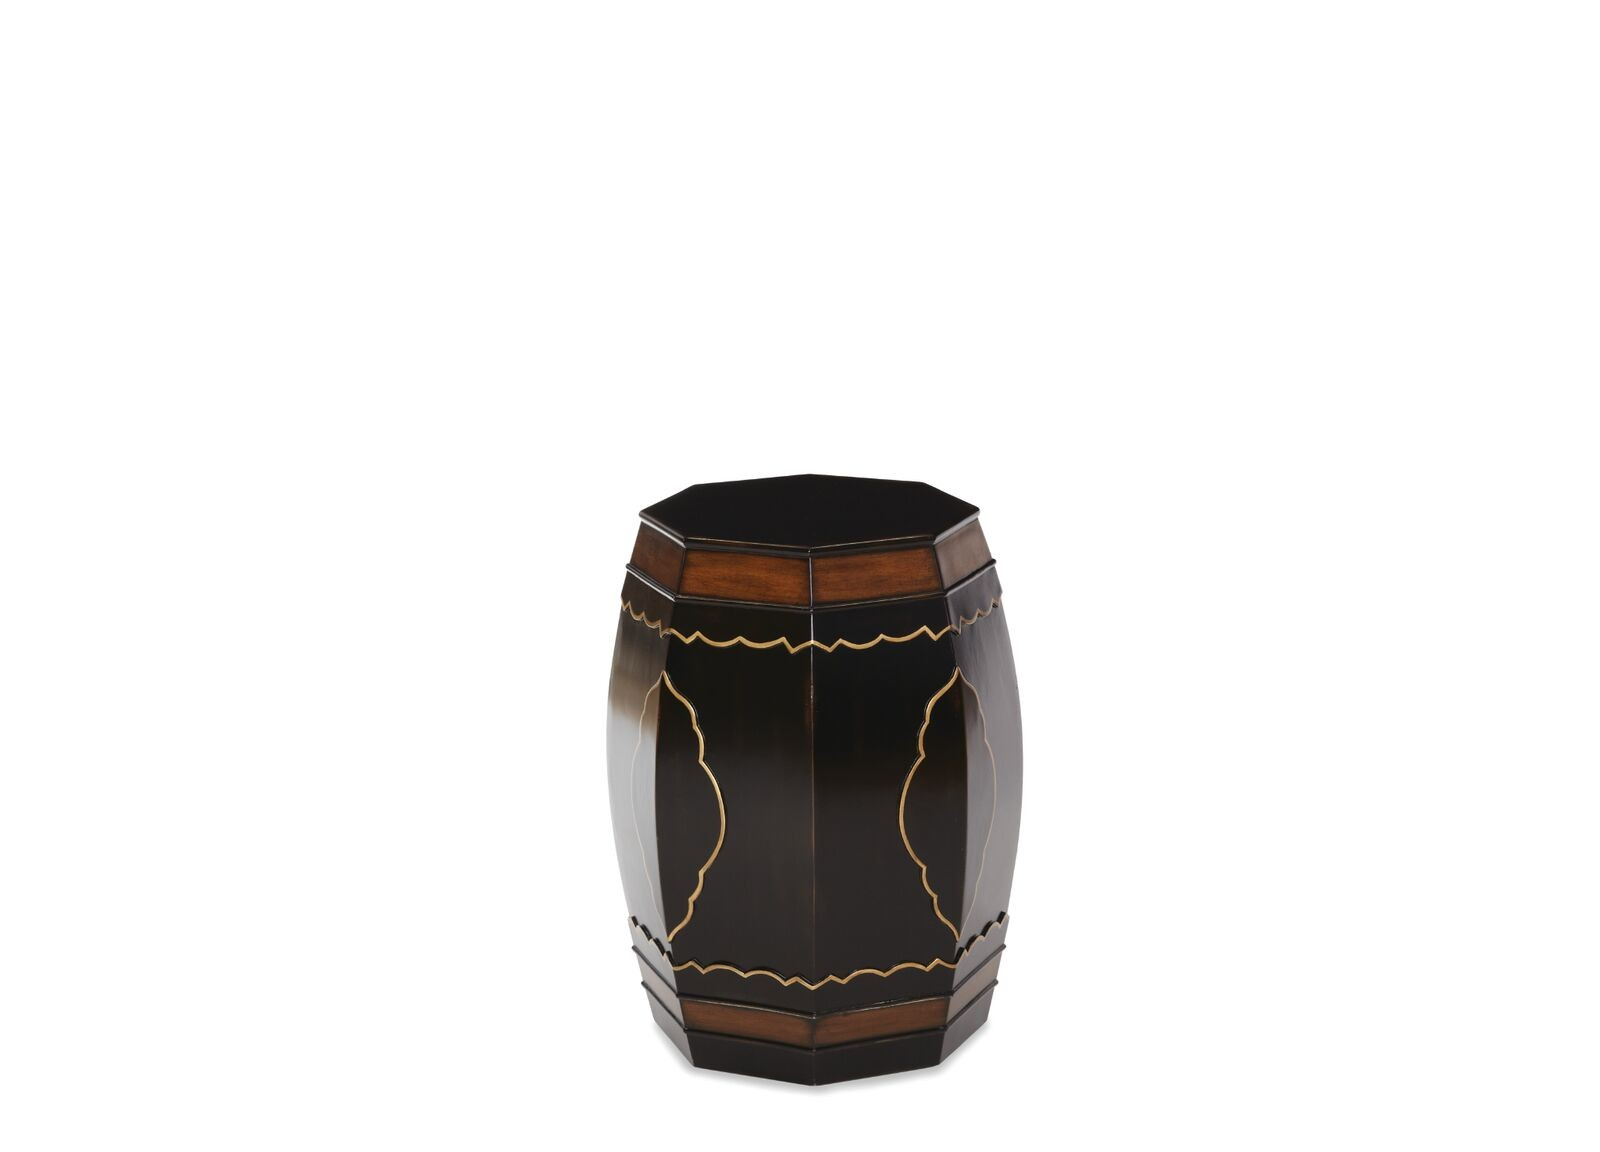 gorgeous drum accent table and avani mango wood appealing discoveries tree stump pottery barn reading lamp white glass bedside cabinet round coffee metal base pedestal black side